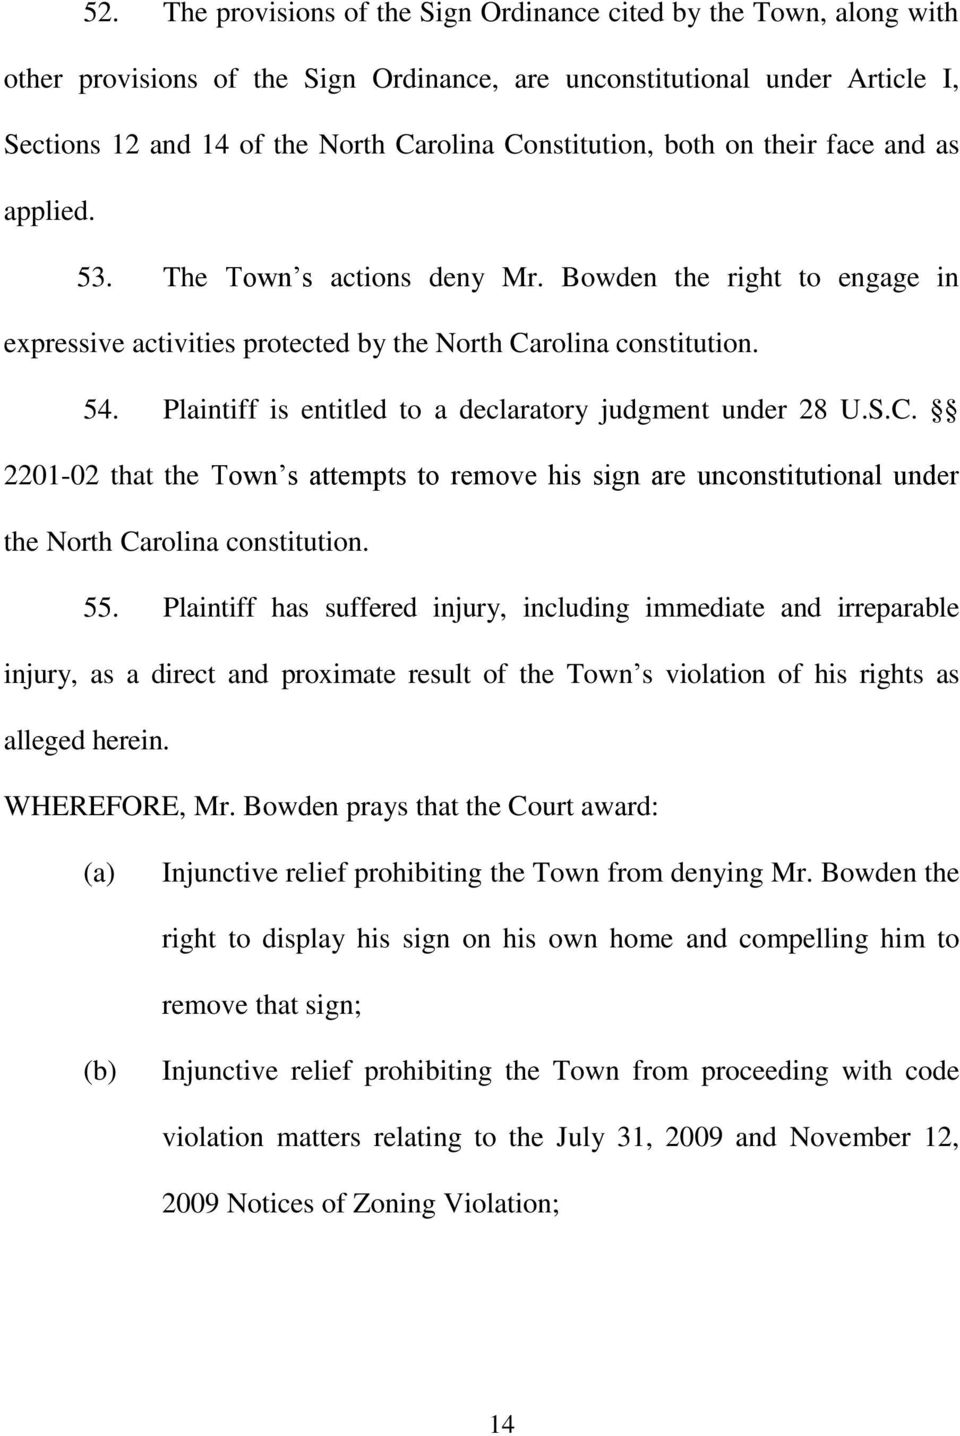 Plaintiff is entitled to a declaratory judgment under 28 U.S.C. 2201-02 that the Town s attempts to remove his sign are unconstitutional under the North Carolina constitution. 55.